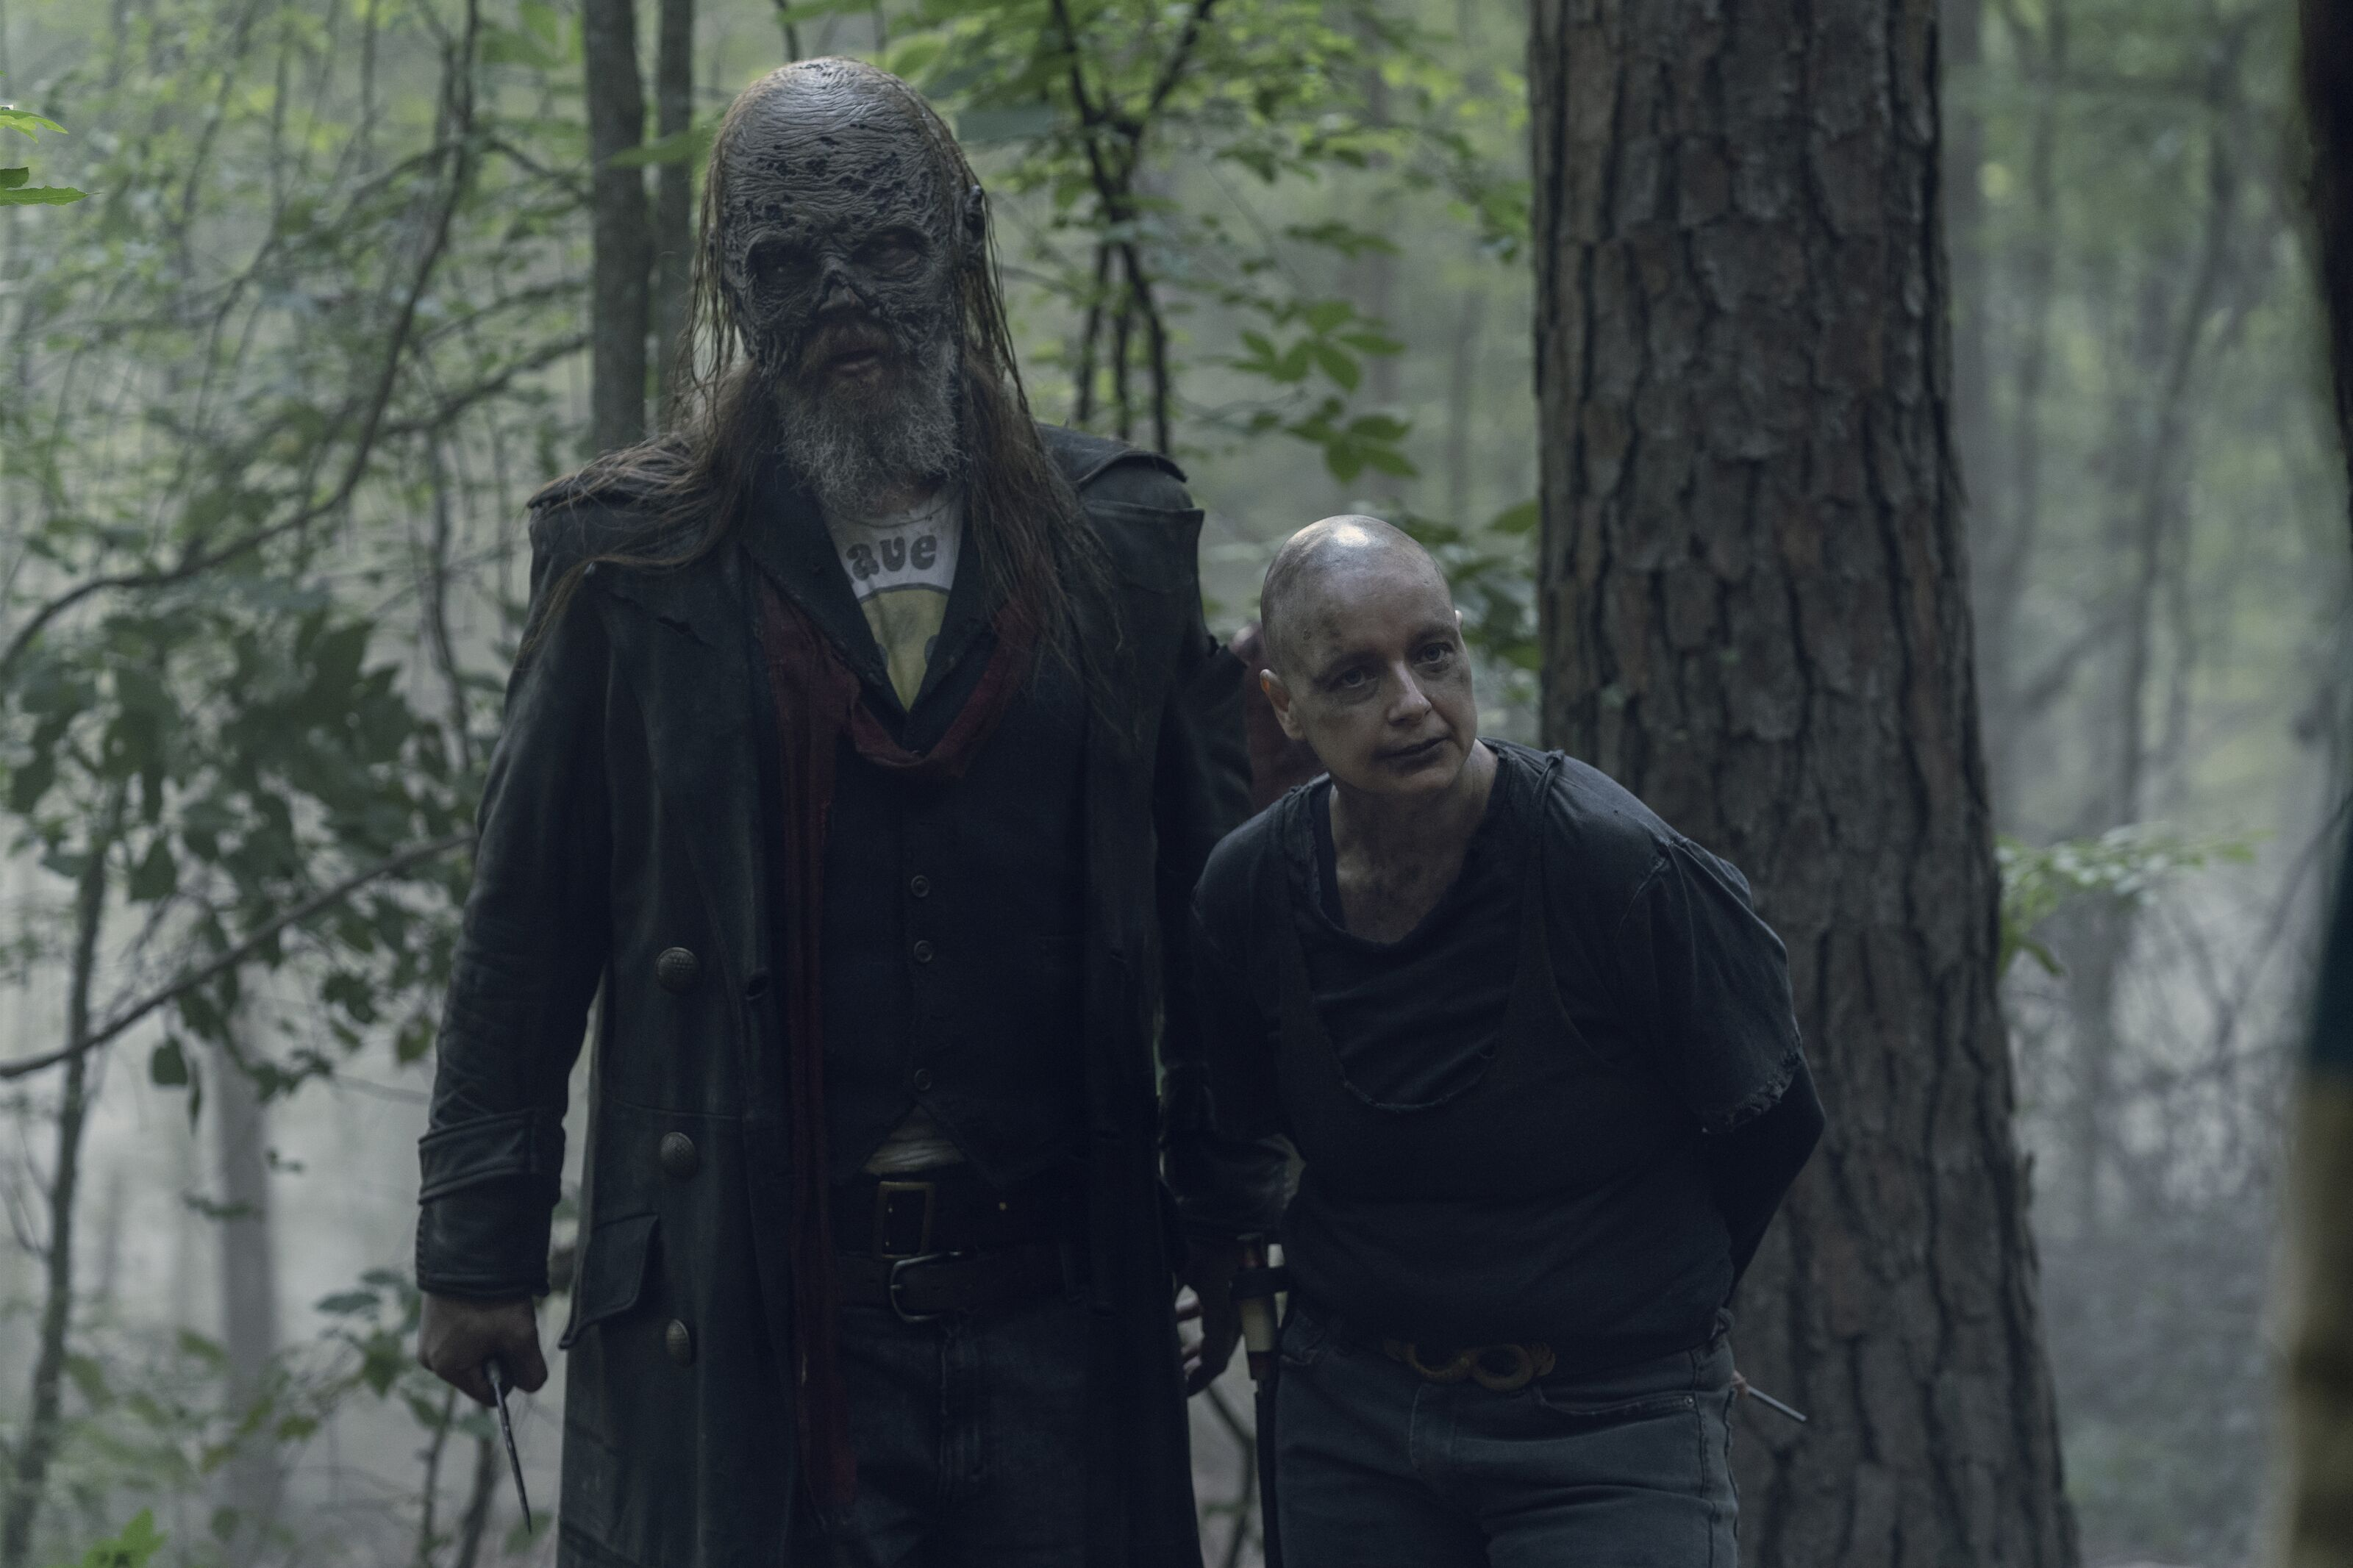 Who should lead the Whisperers on The Walking Dead: Alpha or Beta?